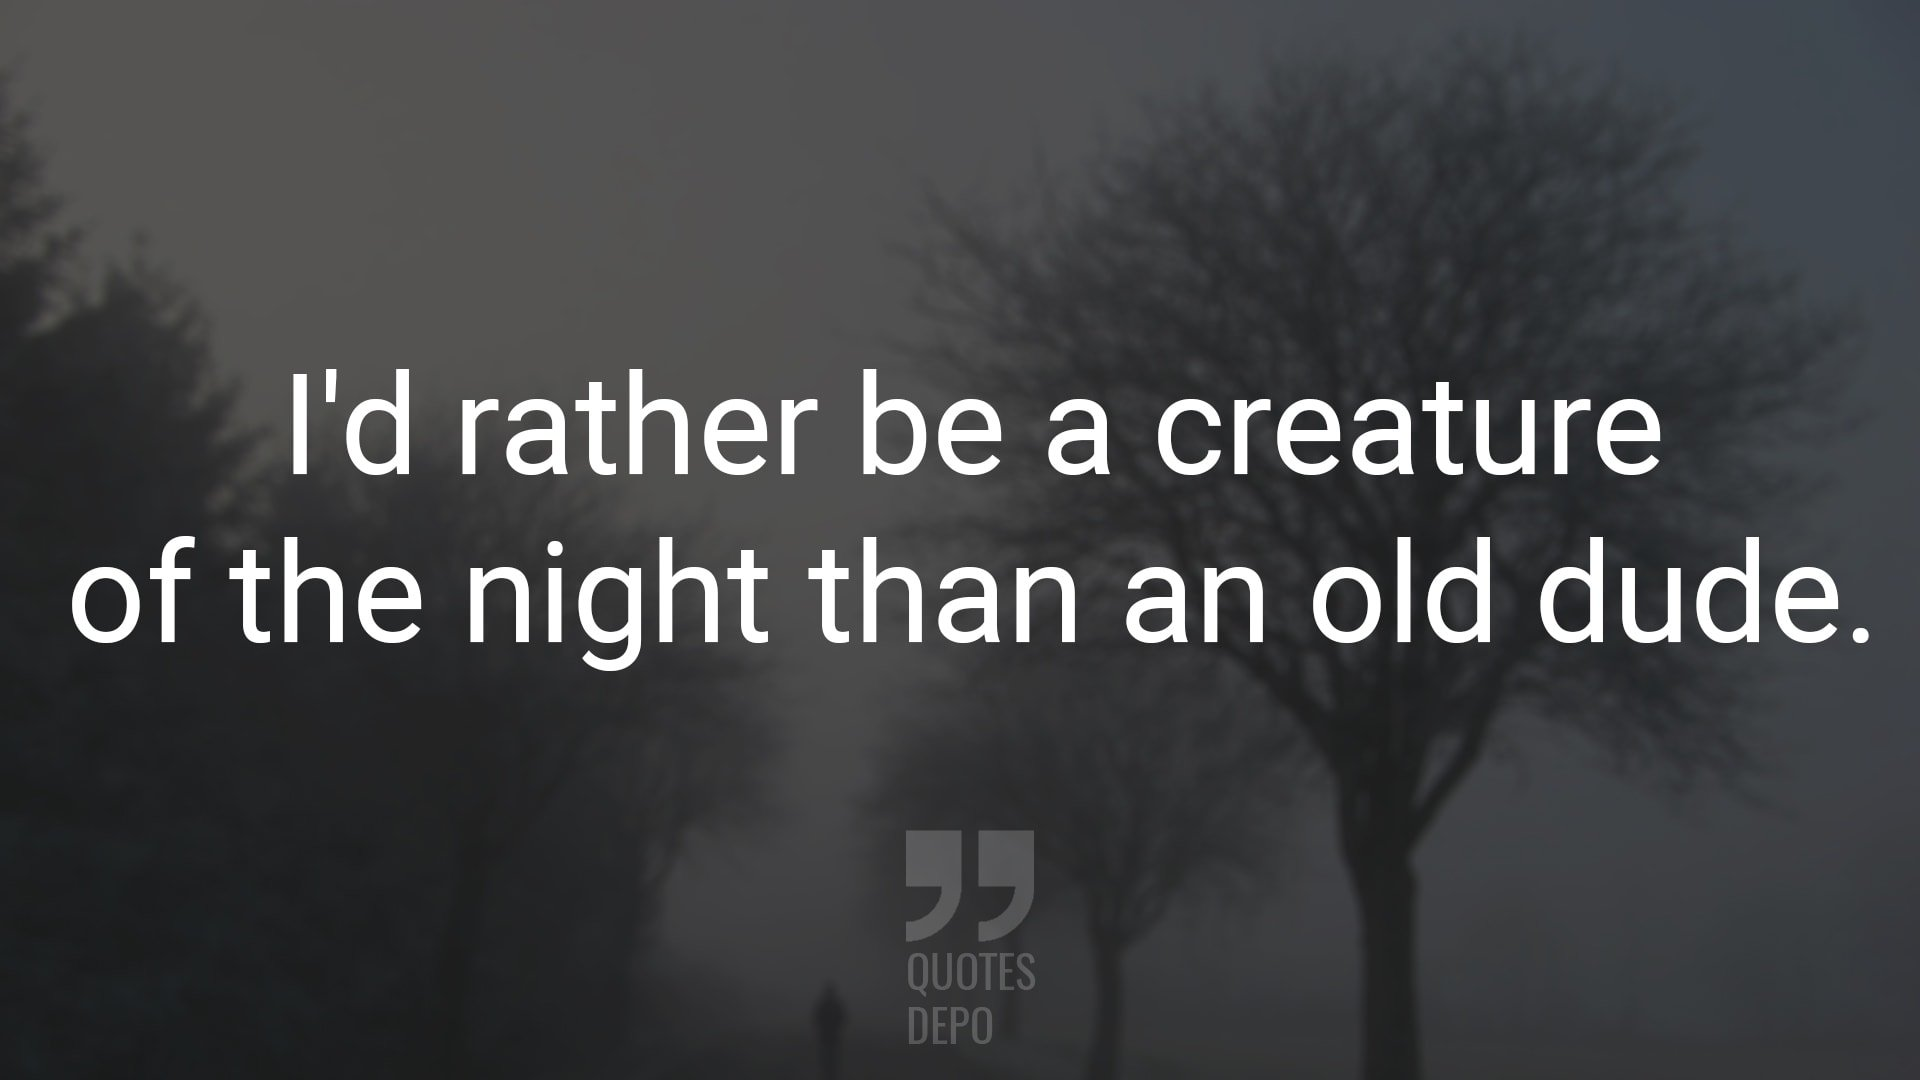 I'd Rather Be a Creature of the Night